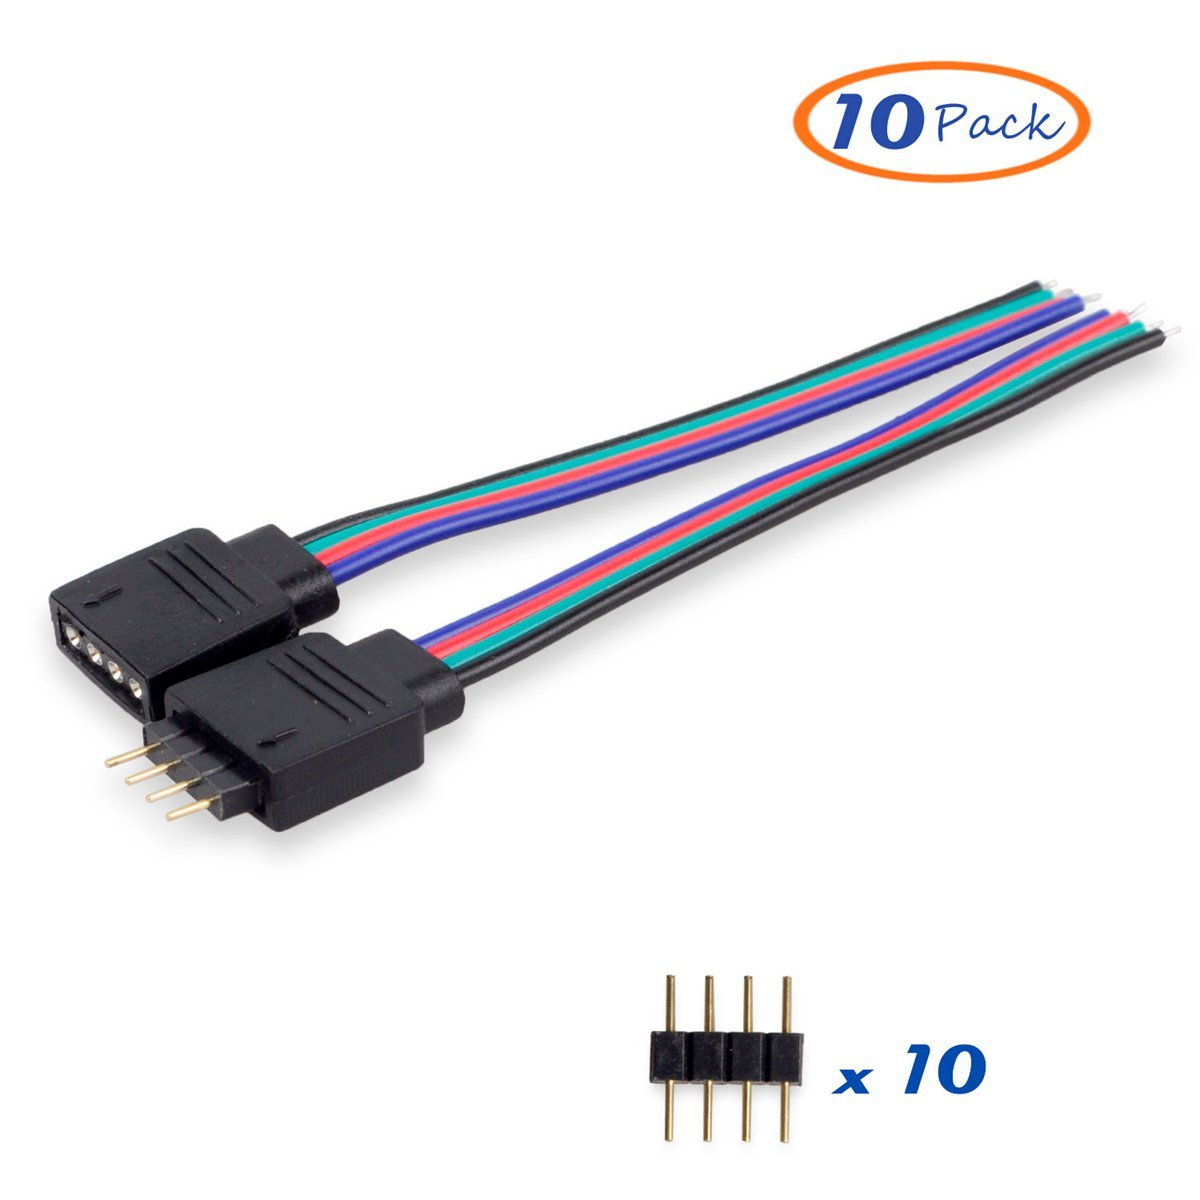 Cheap Rgb Connector Led Find Deals On Line At Pcs 4 Pin Male Female With Wire For 3528 5050 Strip Get Quotations Besmelody 10 Pack Smd Light Strips Cable